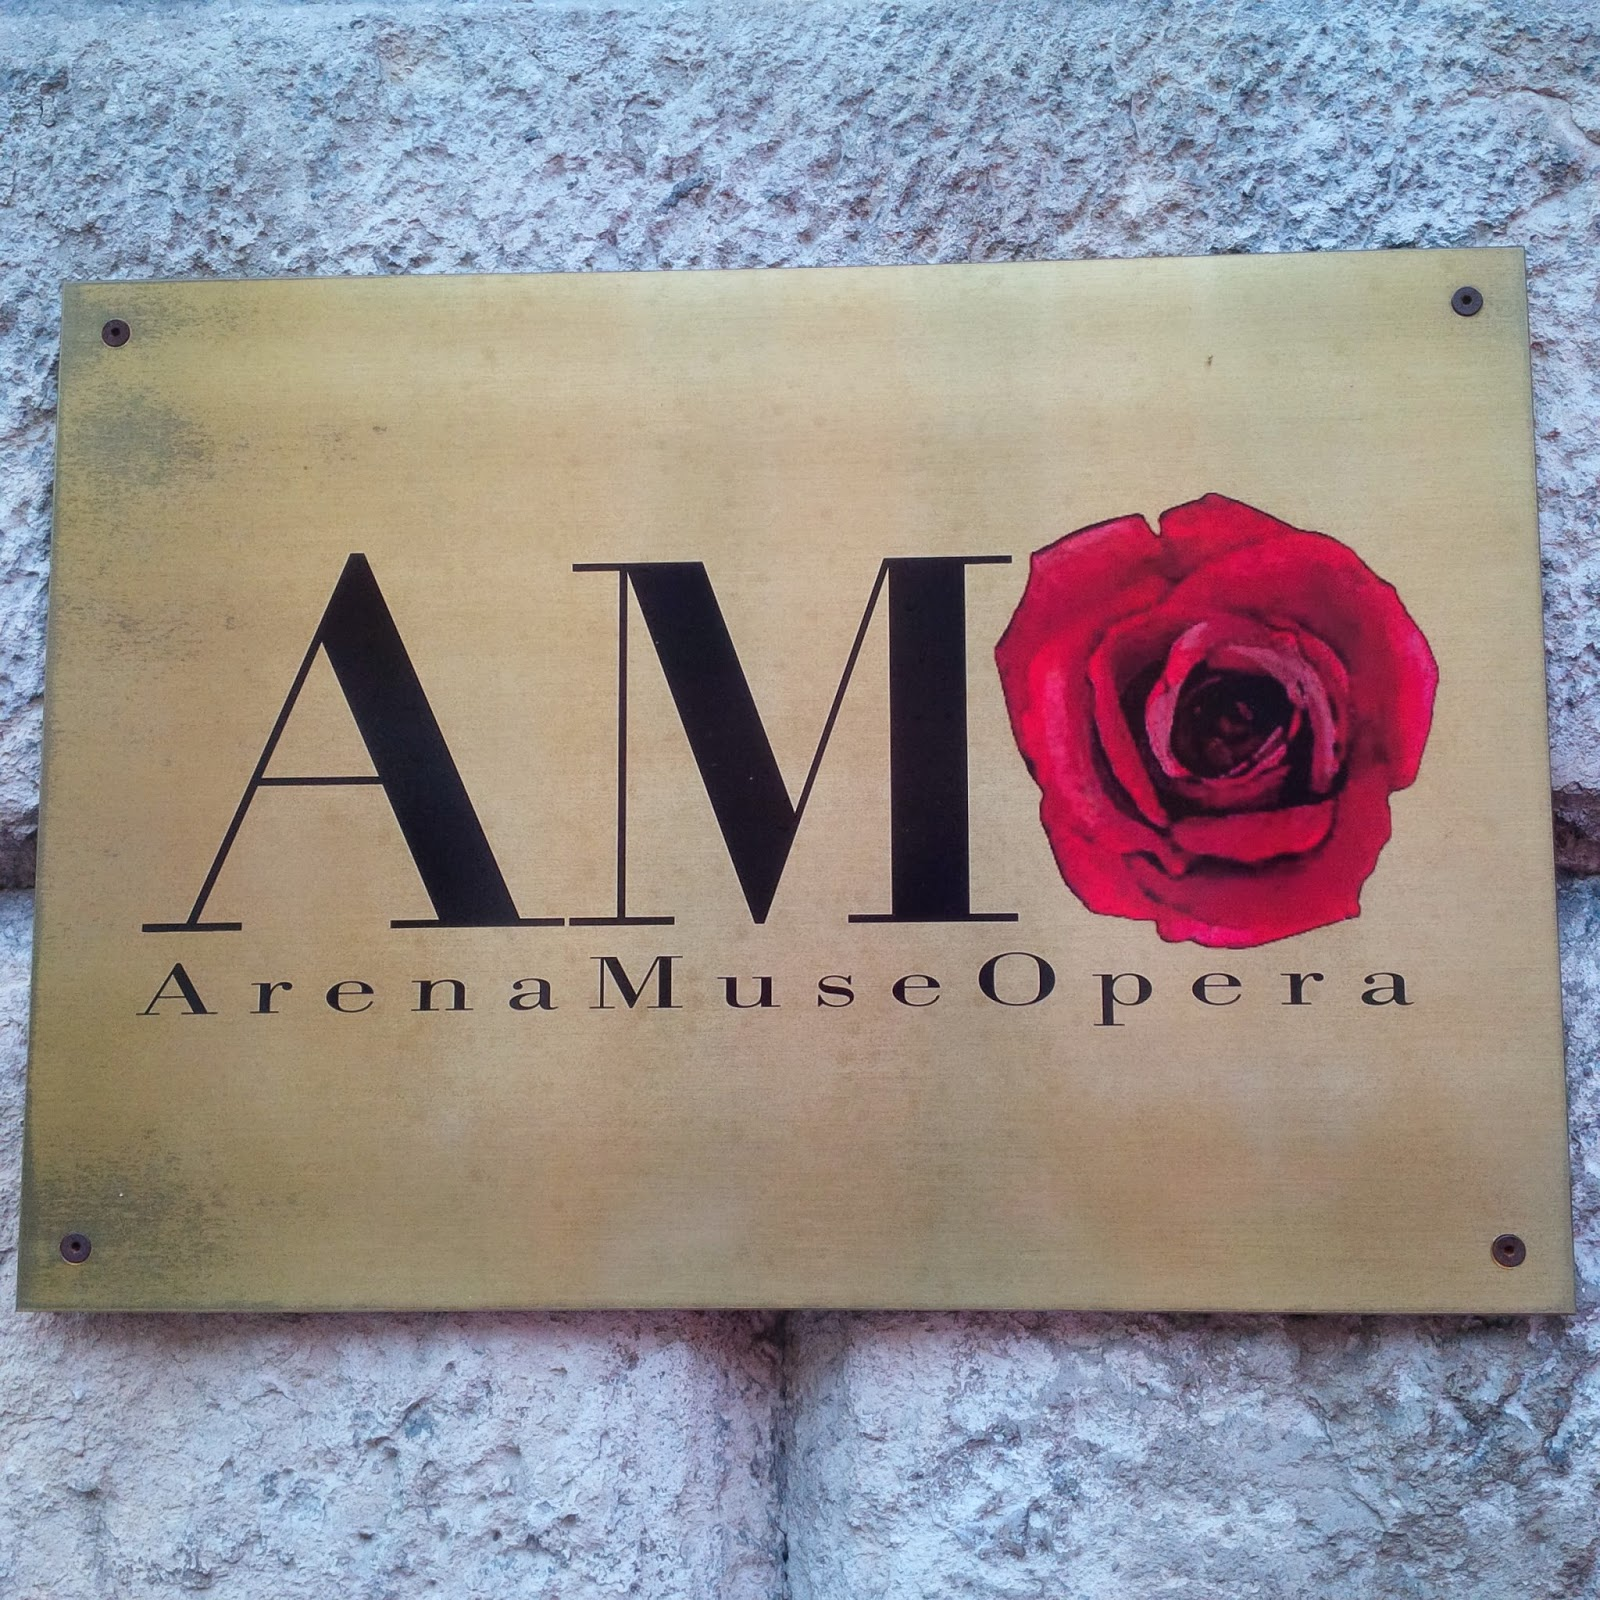 The sign of Arena Museo Opera in Verona